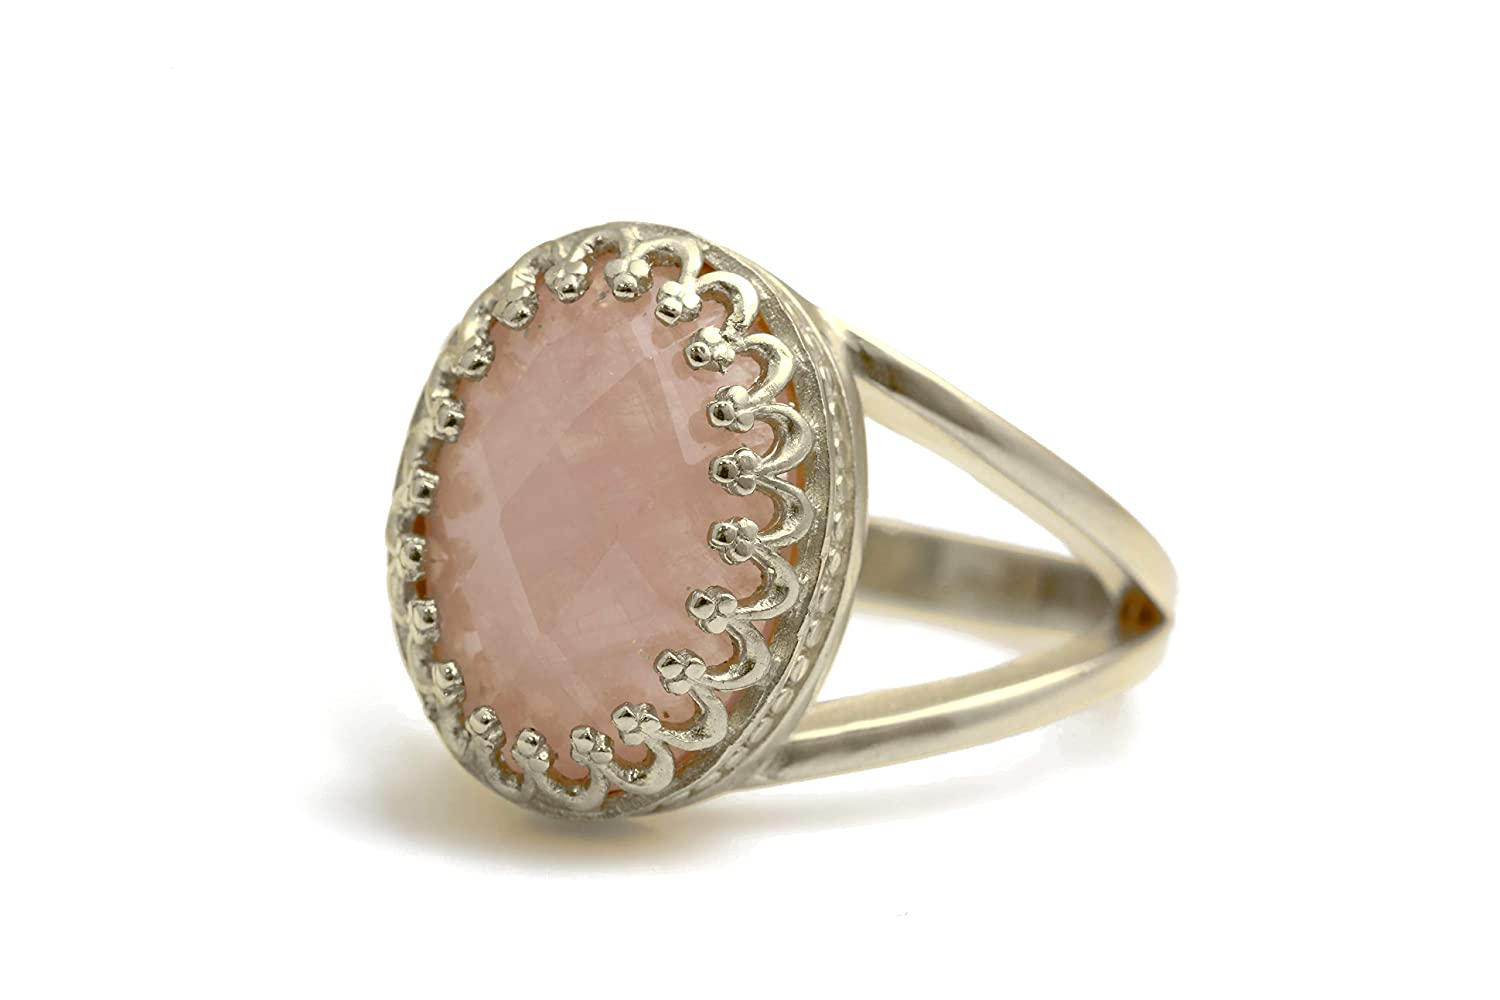 Rose Quartz Ring Adjustable Ring Sterling Silver Ring Hypoallergenic Womens Jewellery Gift For Her Handmade Jewellery Minimalist Style